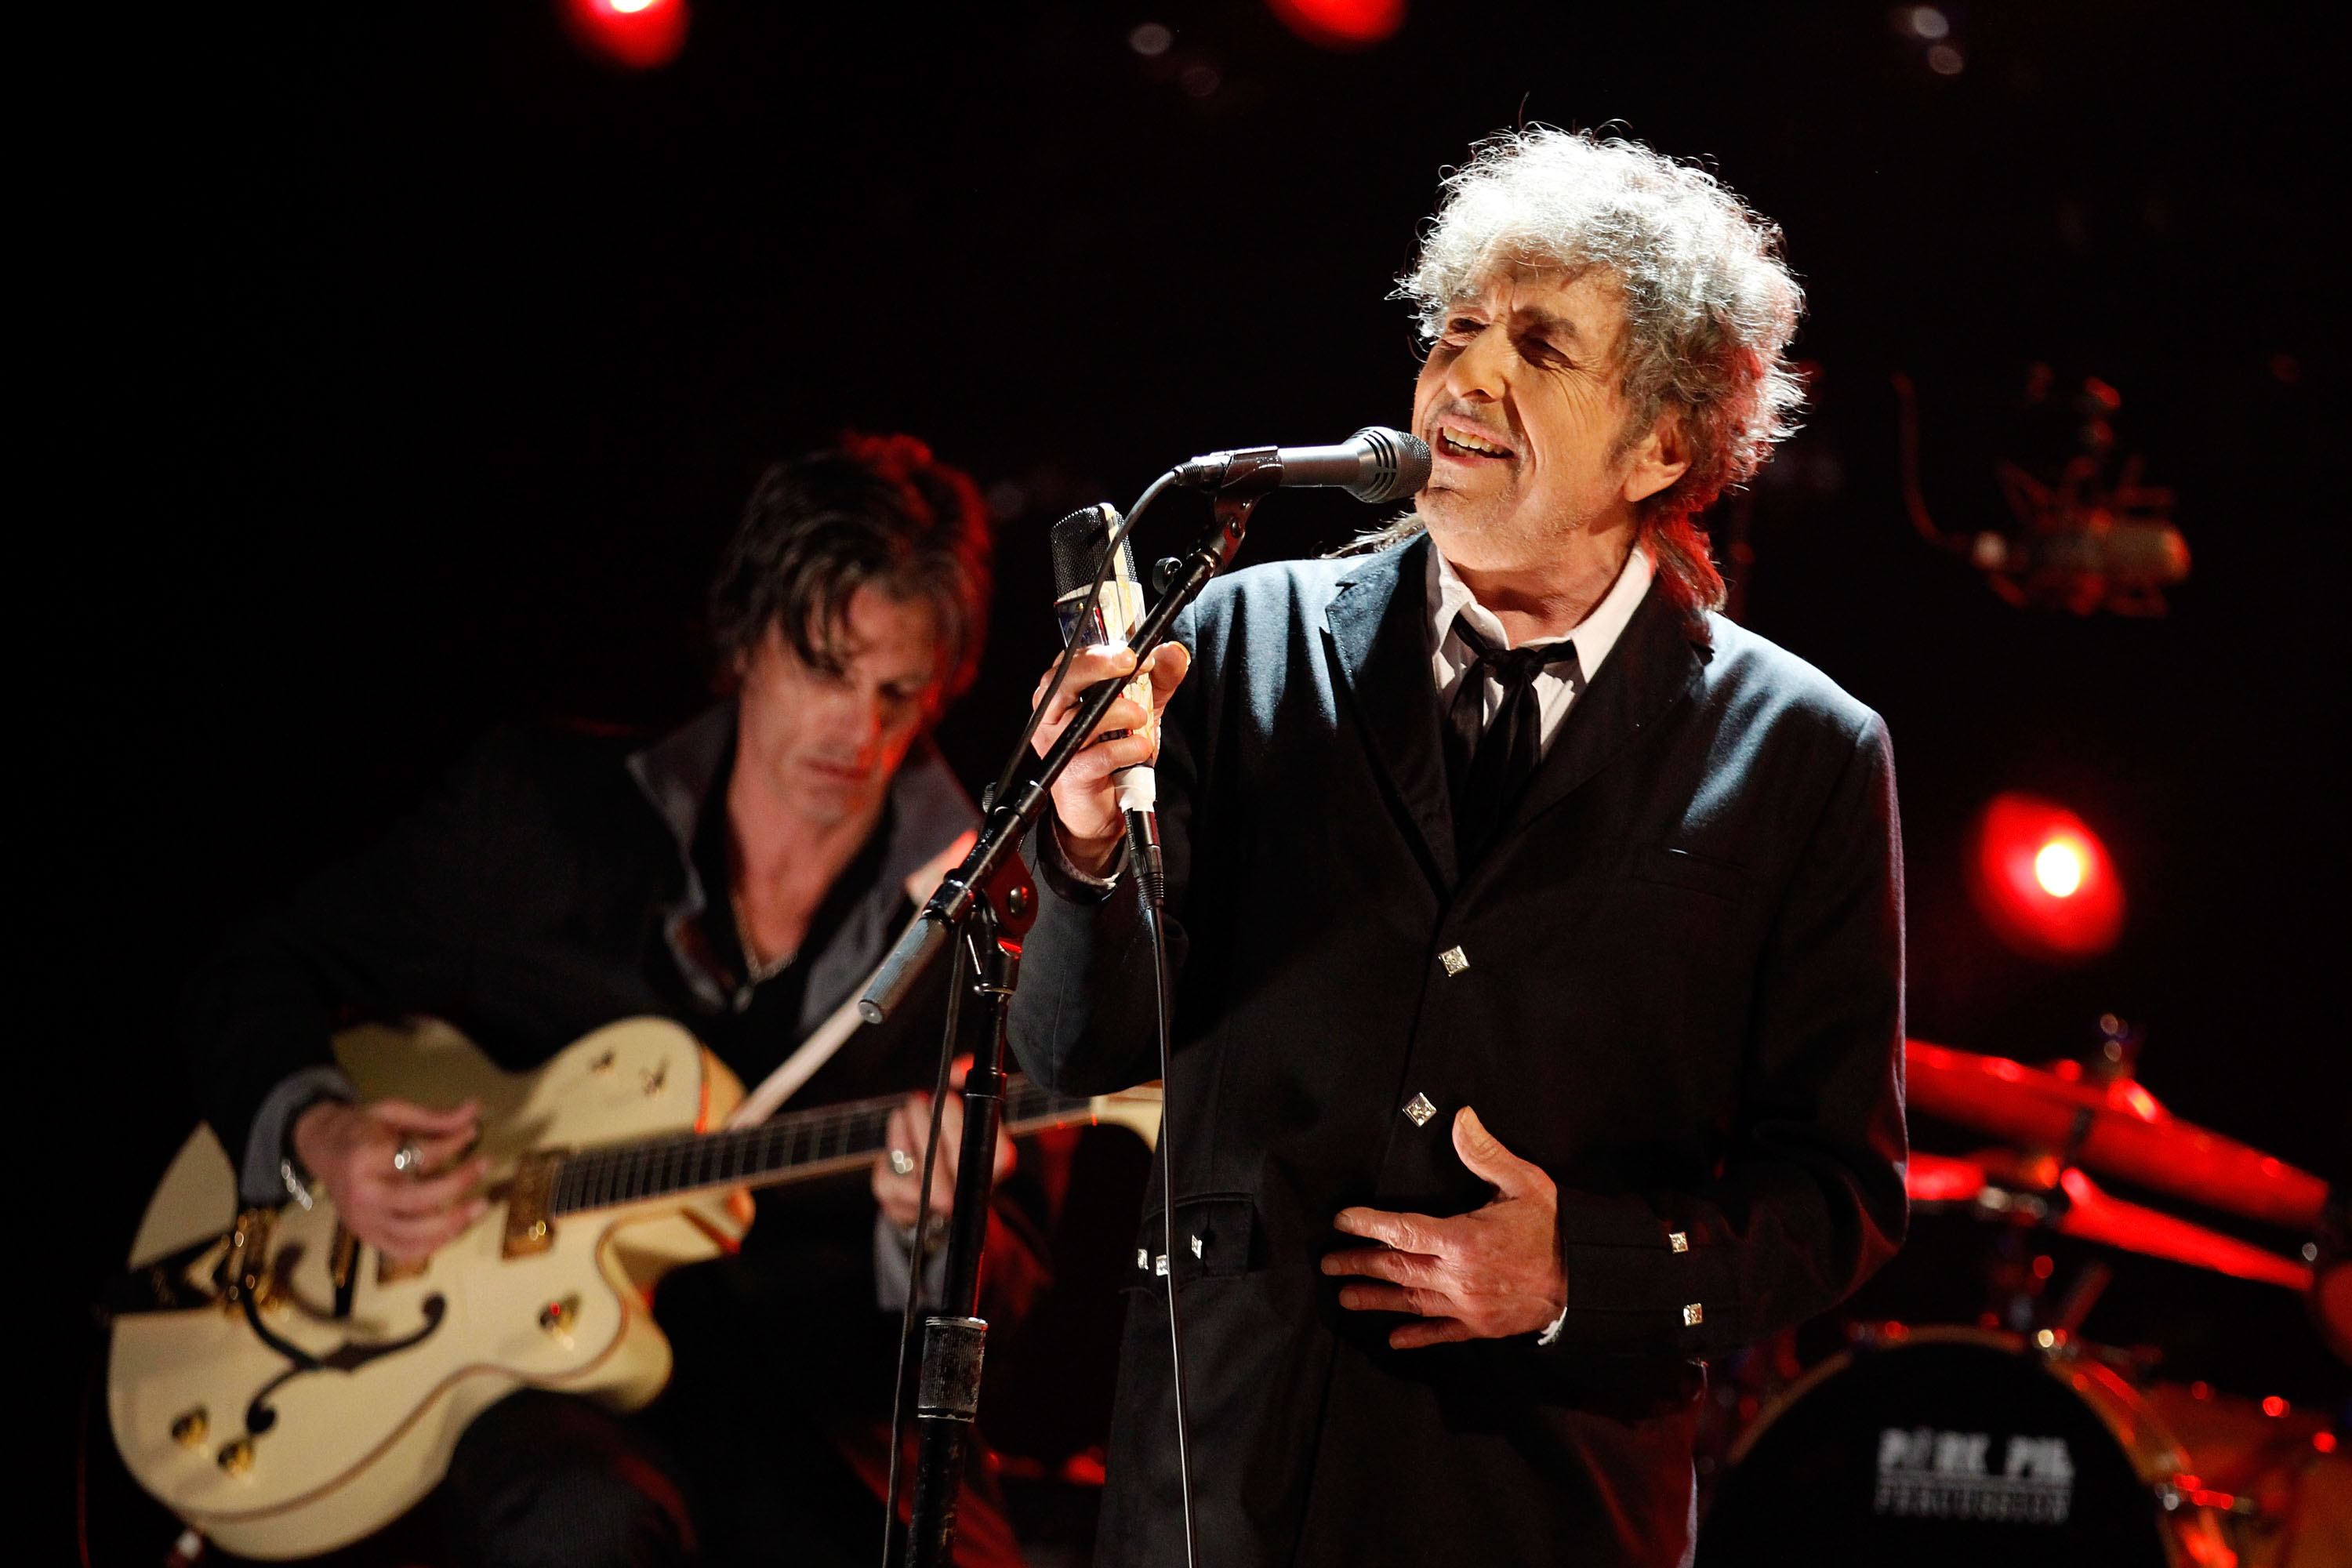 Bob Dylan performs onstage during the 17th Annual Critics' Choice Movie Awards held at The Hollywood Palladium on January 12, 2012 in Los Angeles, California.